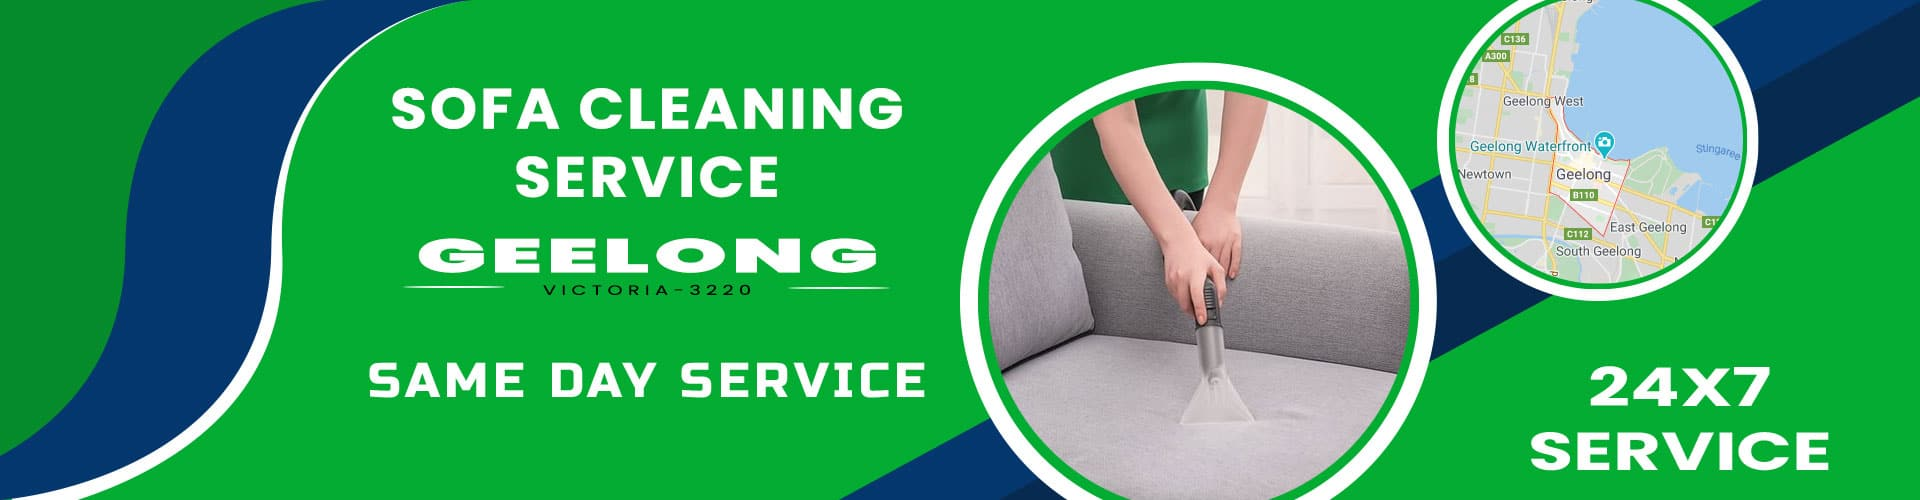 Sofa Cleaning Geelong